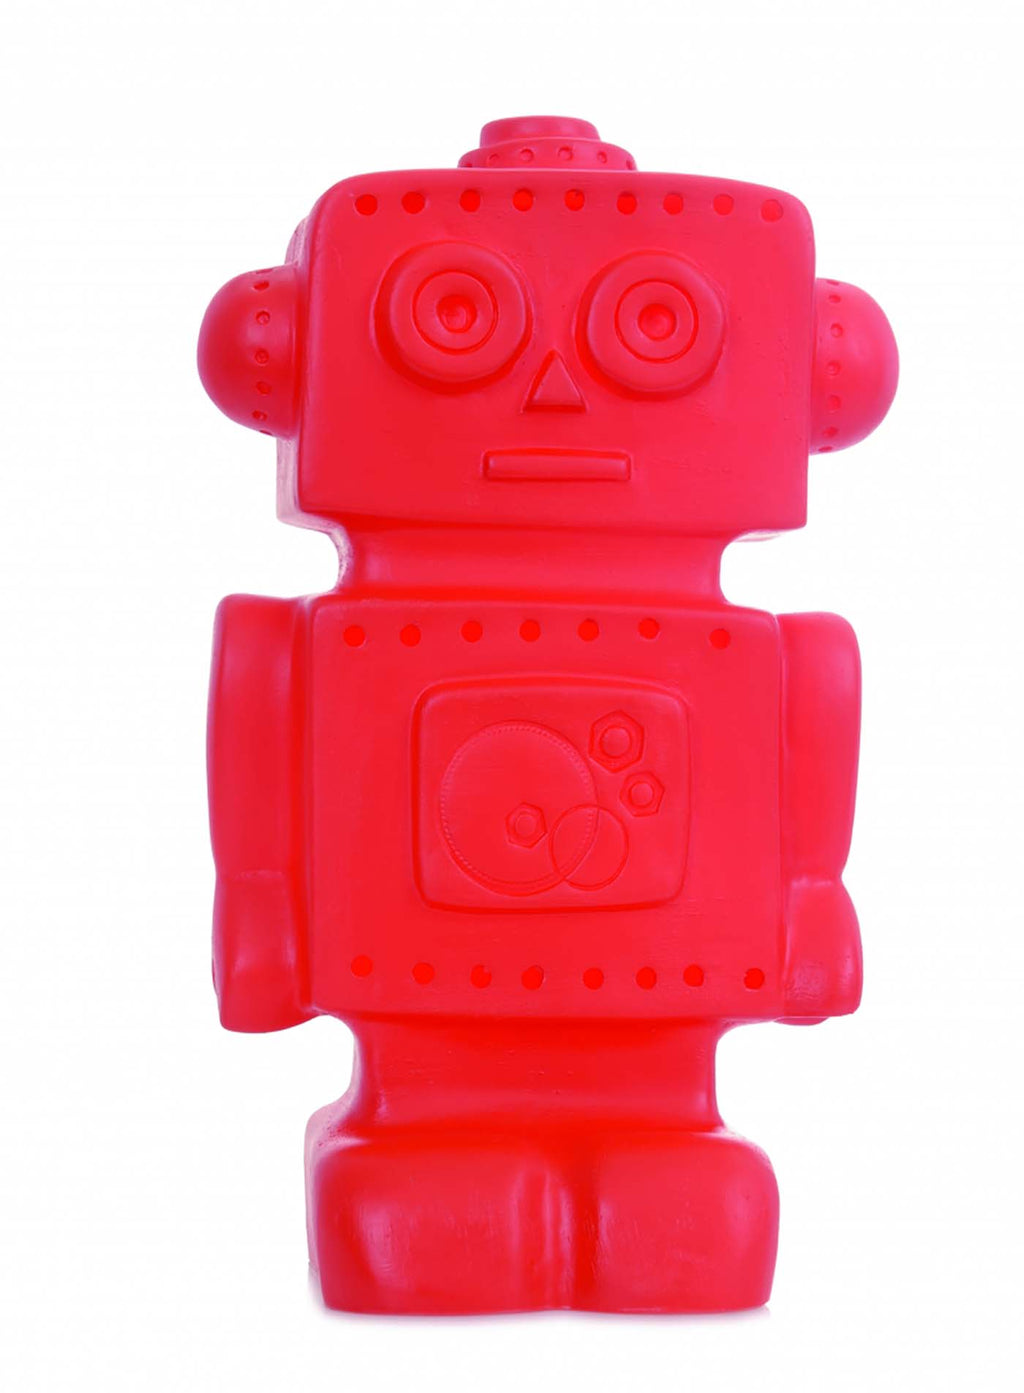 Heico Robot Lamp Red